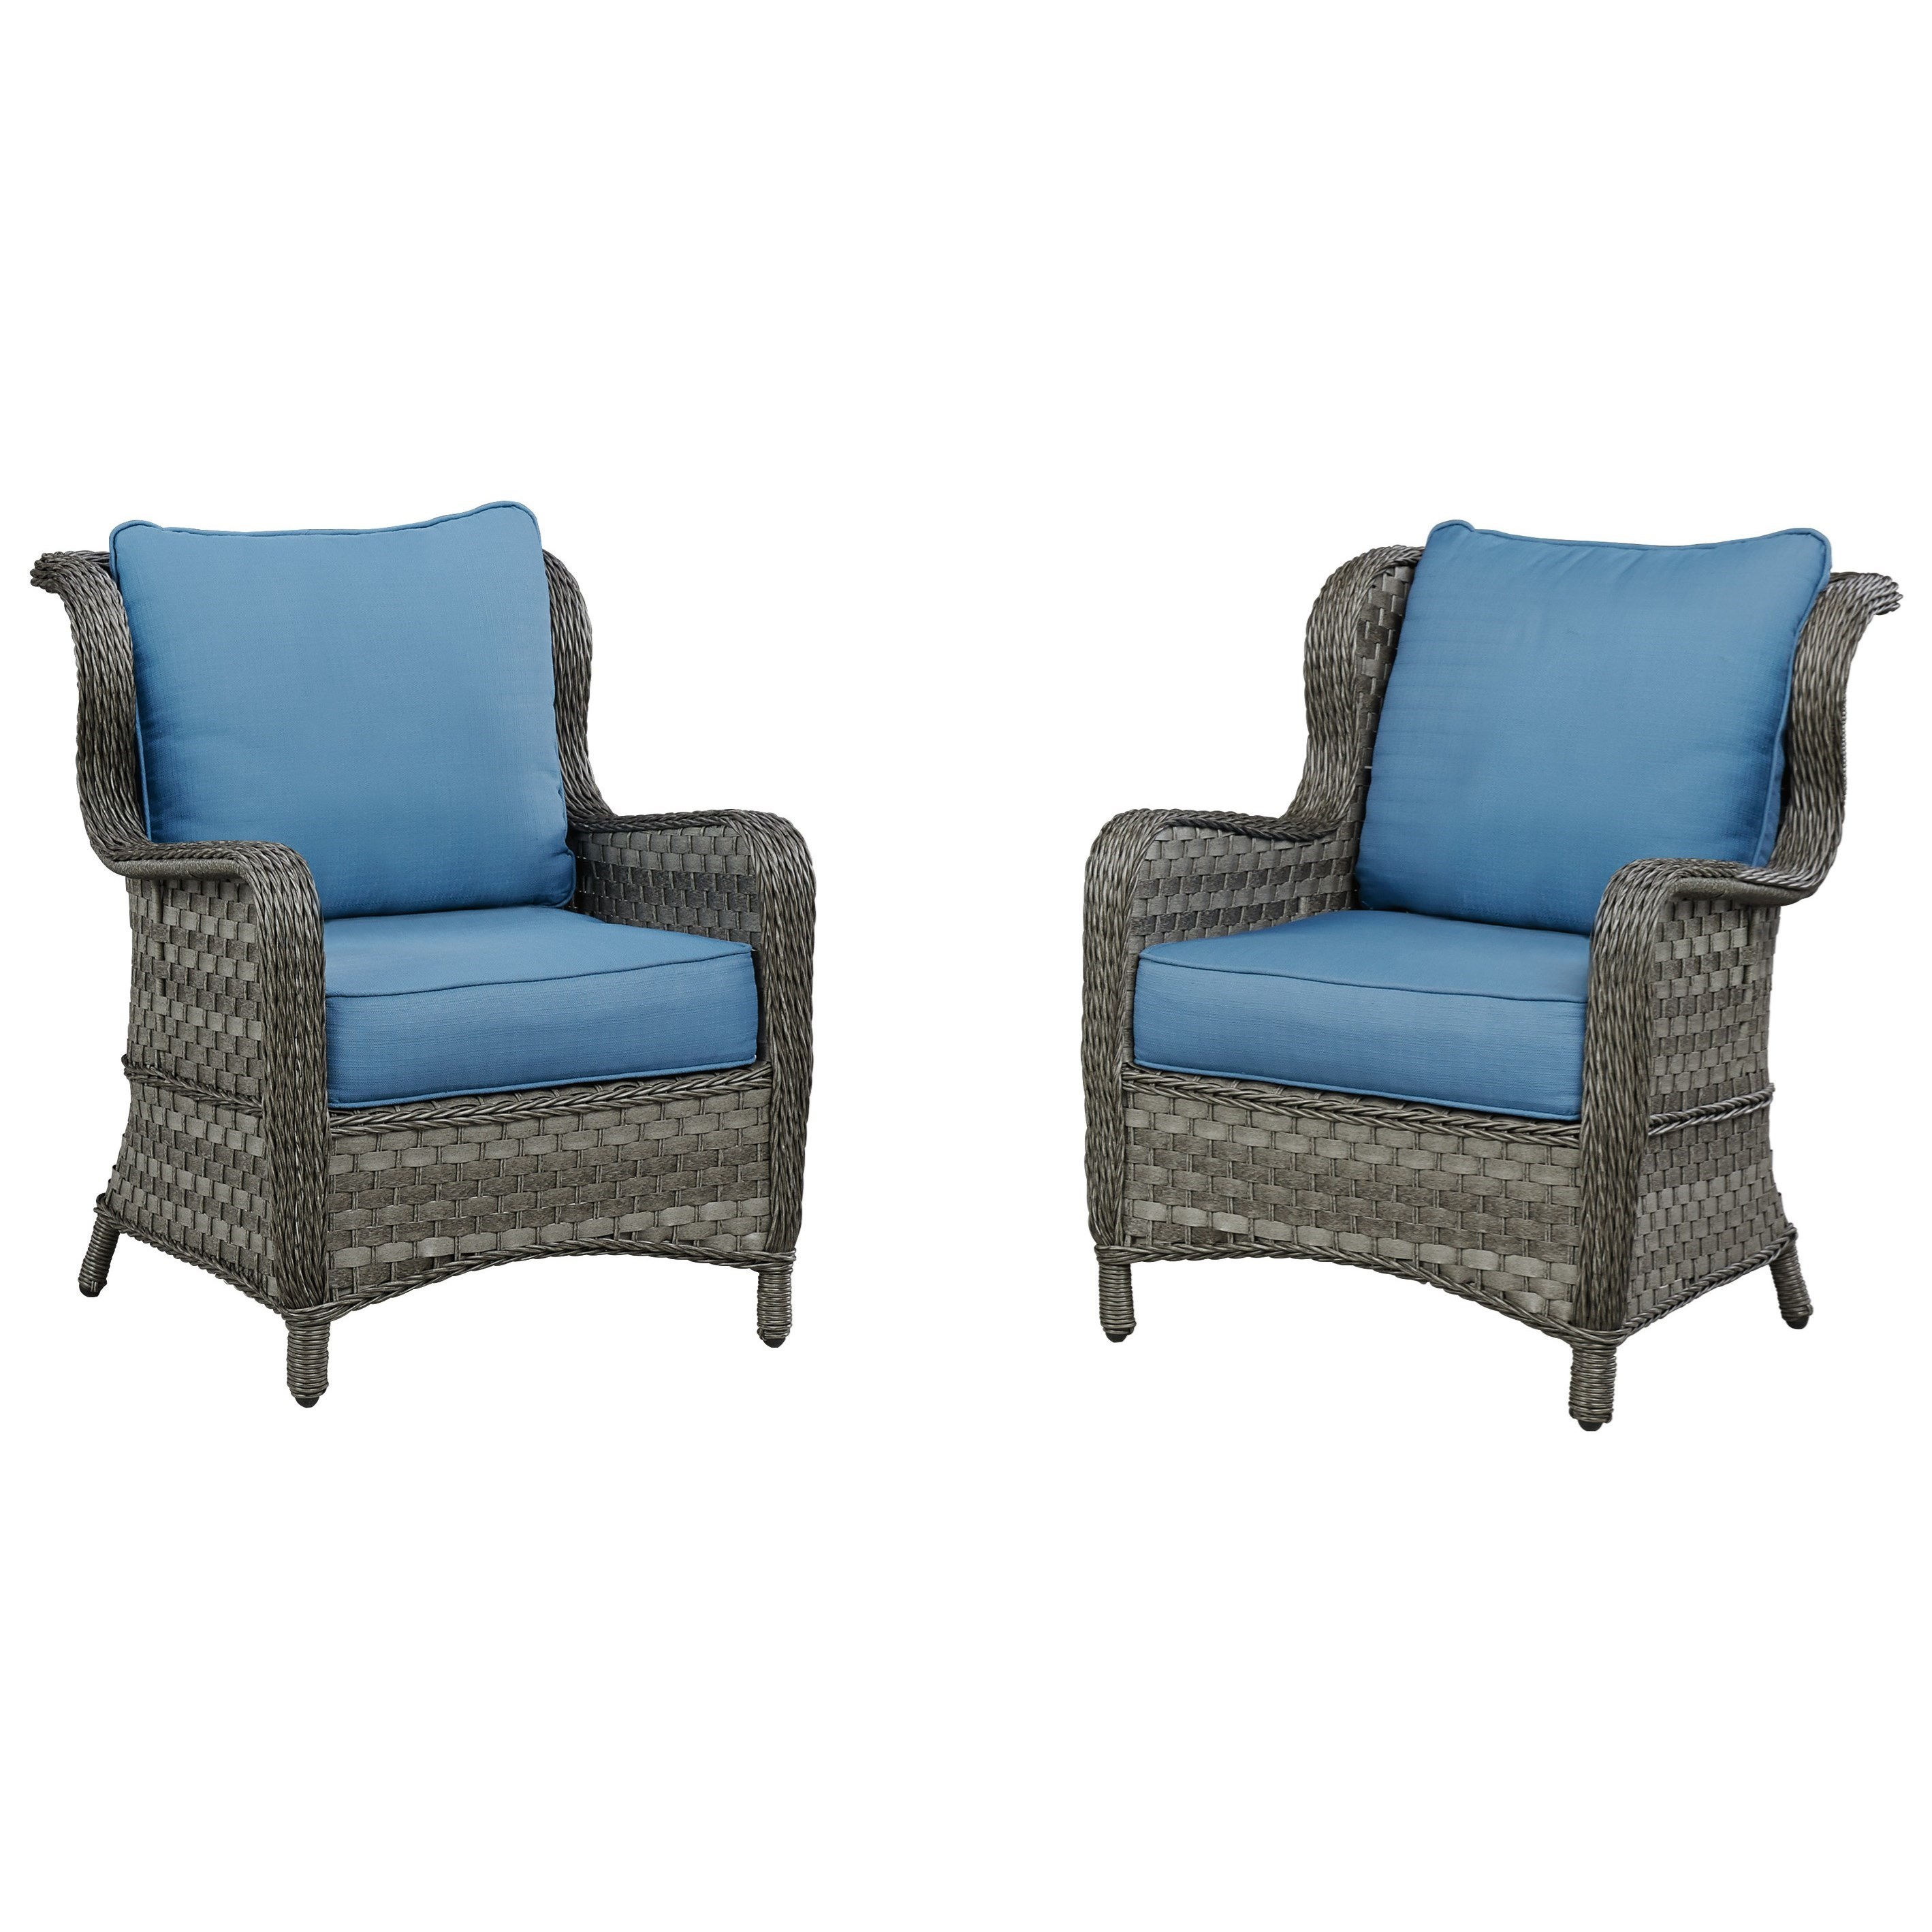 Beau Signature Design By Ashley Abbots CourtSet Of 2 Outdoor Lounge Chairs W/  Cushion ...